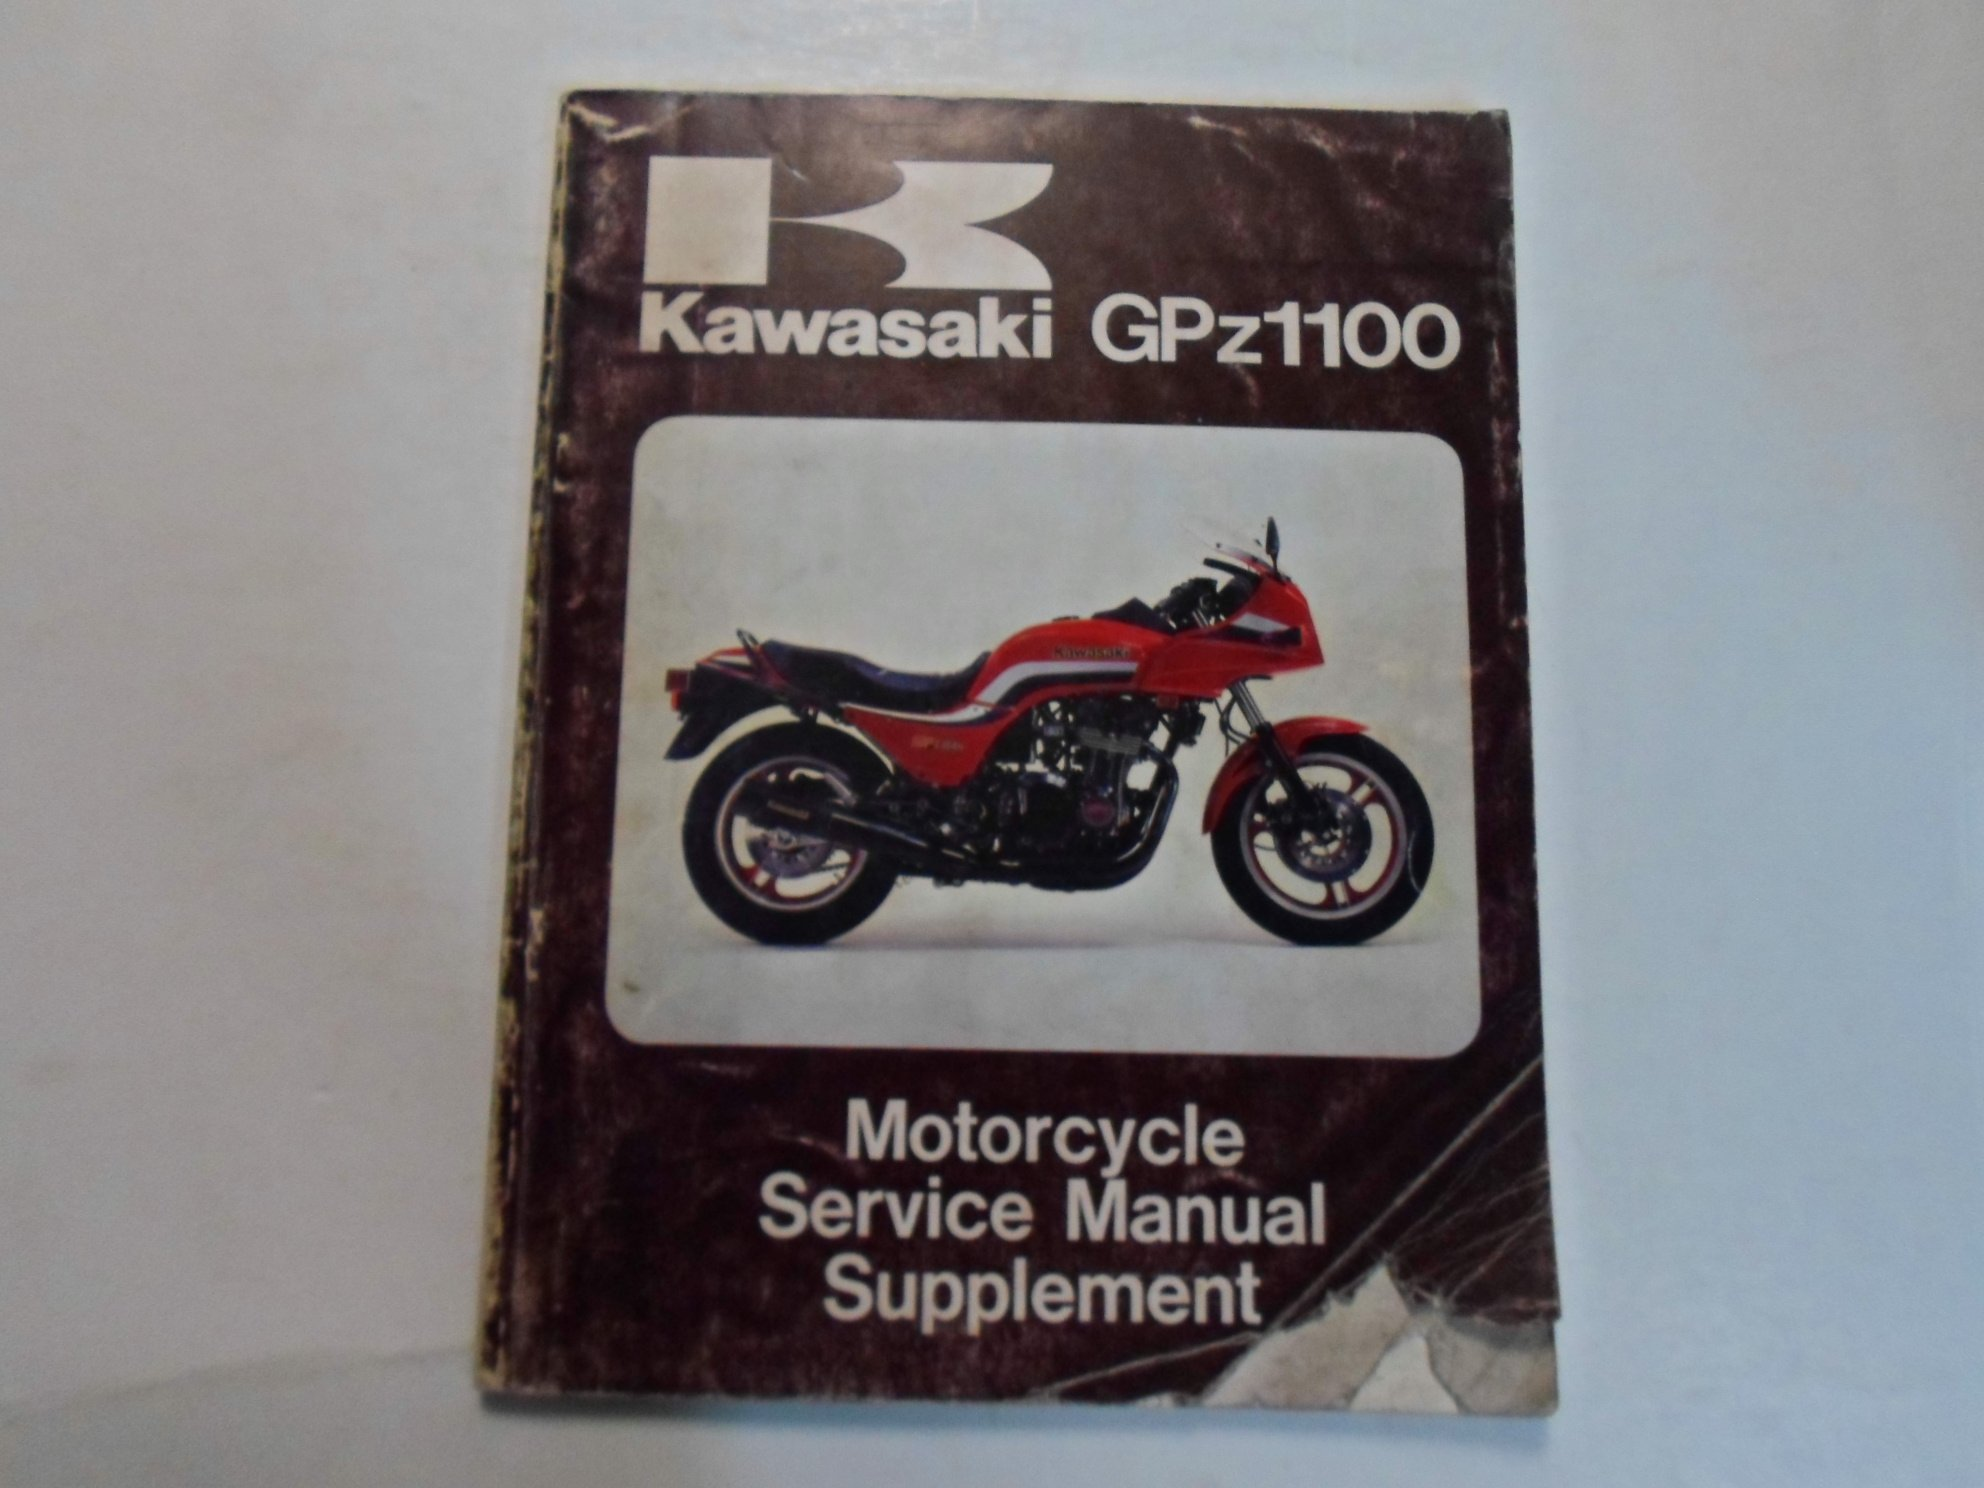 Kawasaki Gpz1100 Repair And Service Manual Gpz 750 Wiring Diagram 1983 Motorcycle Supplement Faded Rh Amazon Com H2r 1100 Turbo